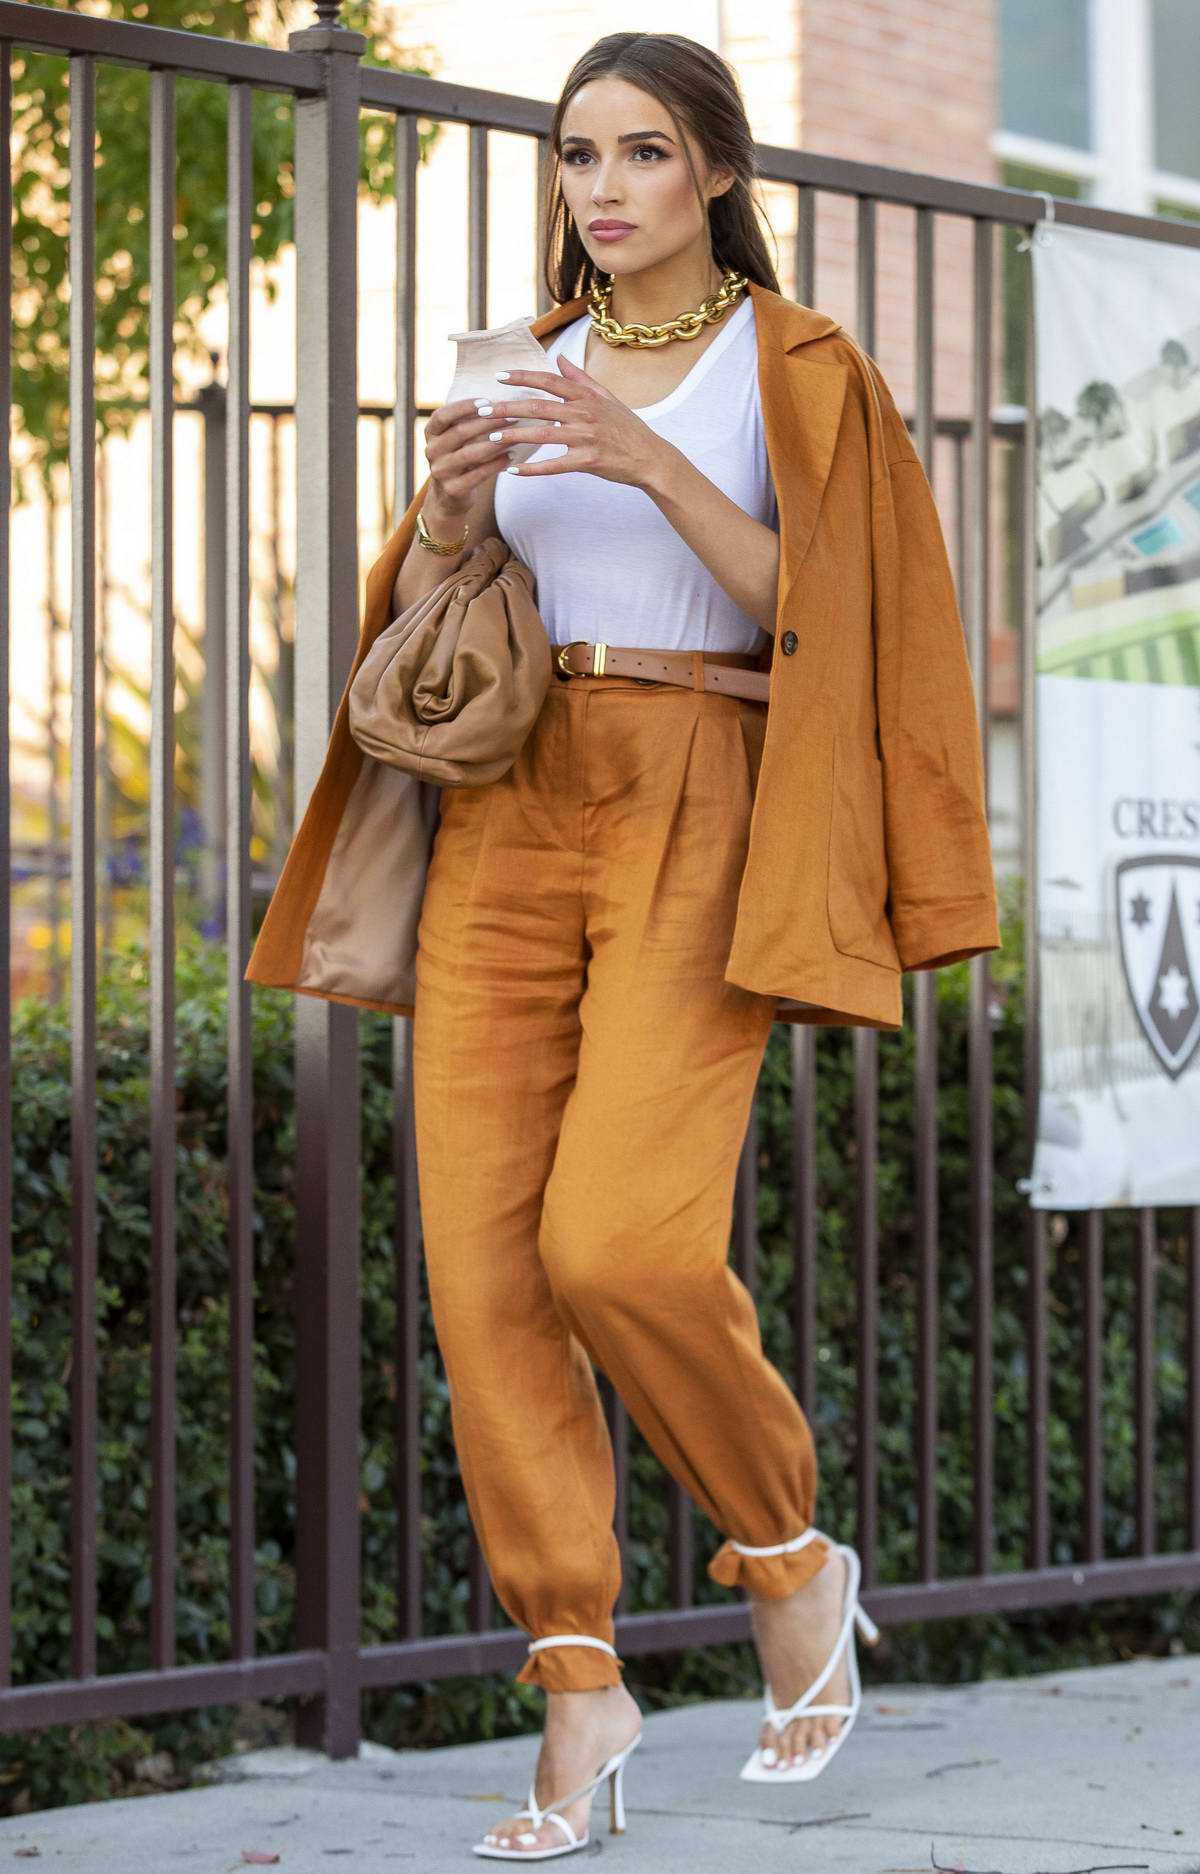 Olivia Culpo looks flawless in a burnt-orange linen suit during an outing Los Angeles